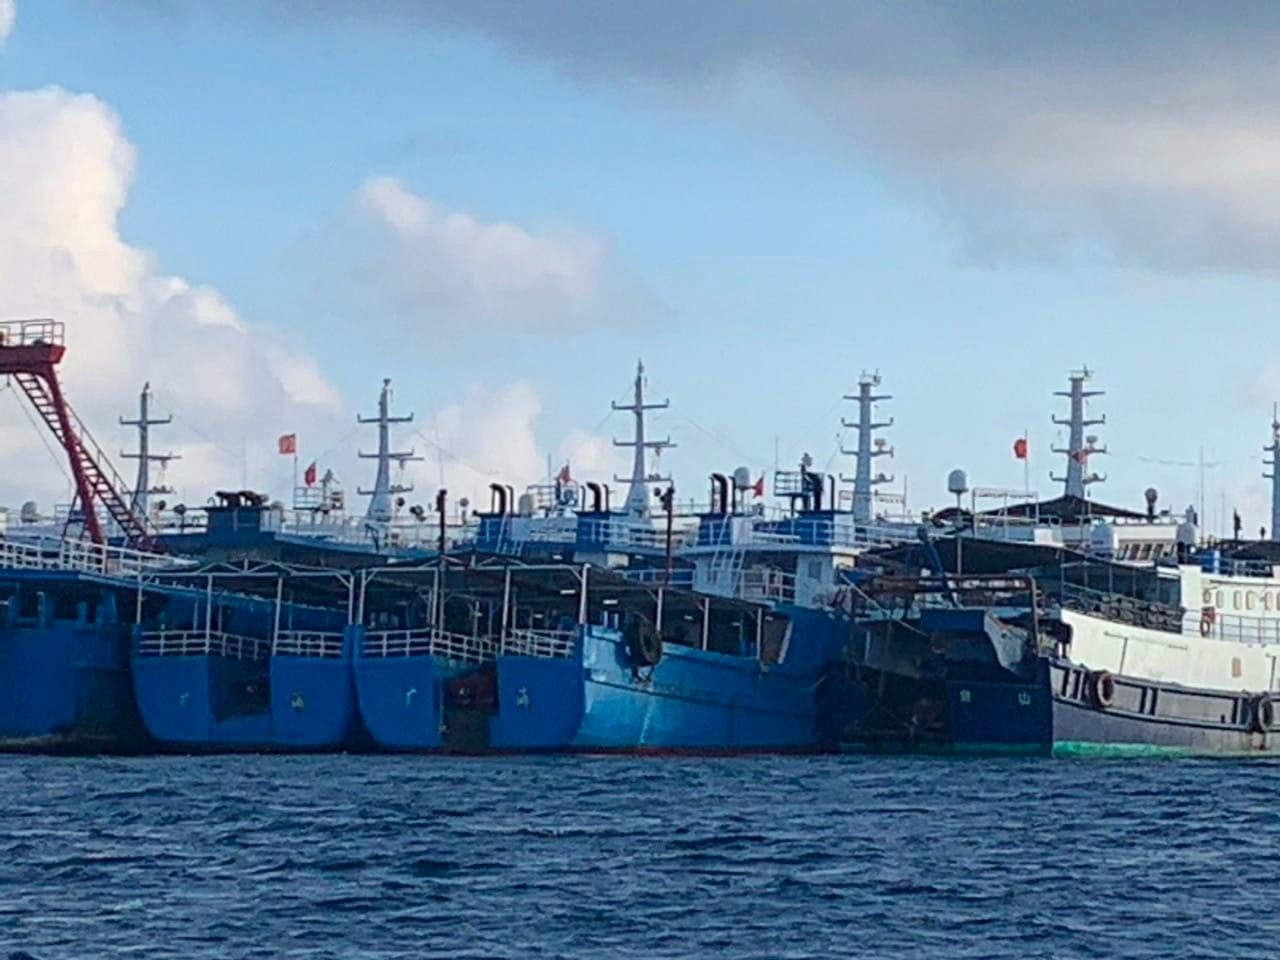 Chinese vessels, believed to be manned by Chinese maritime militia personnel, are seen at Whitsun Reef, South China Sea on March 27, 2021. Philippine Coast Guard/National Task Force-West Philippine Sea/Handout via REUTERS